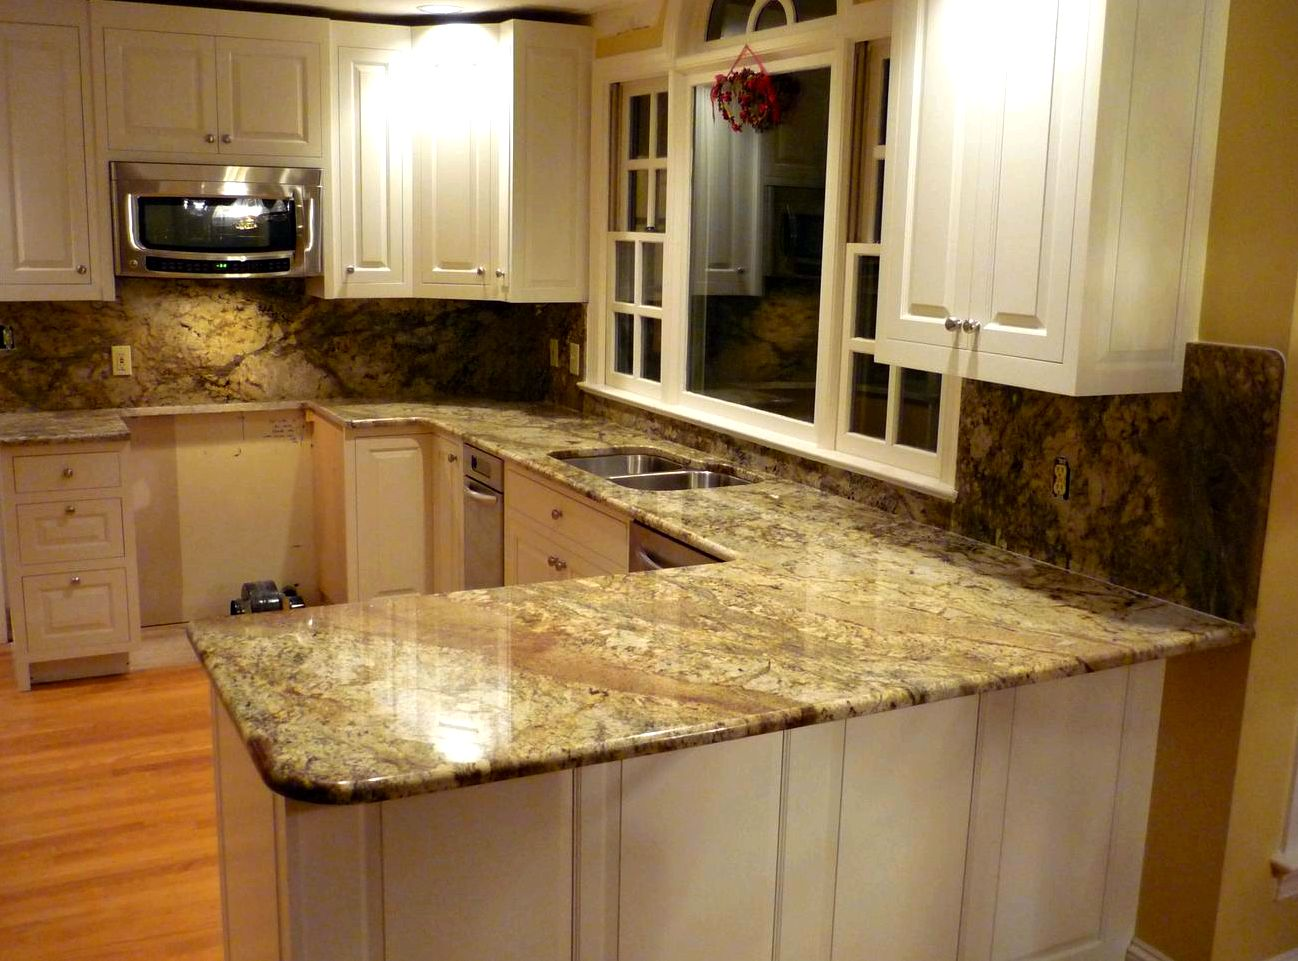 Countertops We provide various kinds of